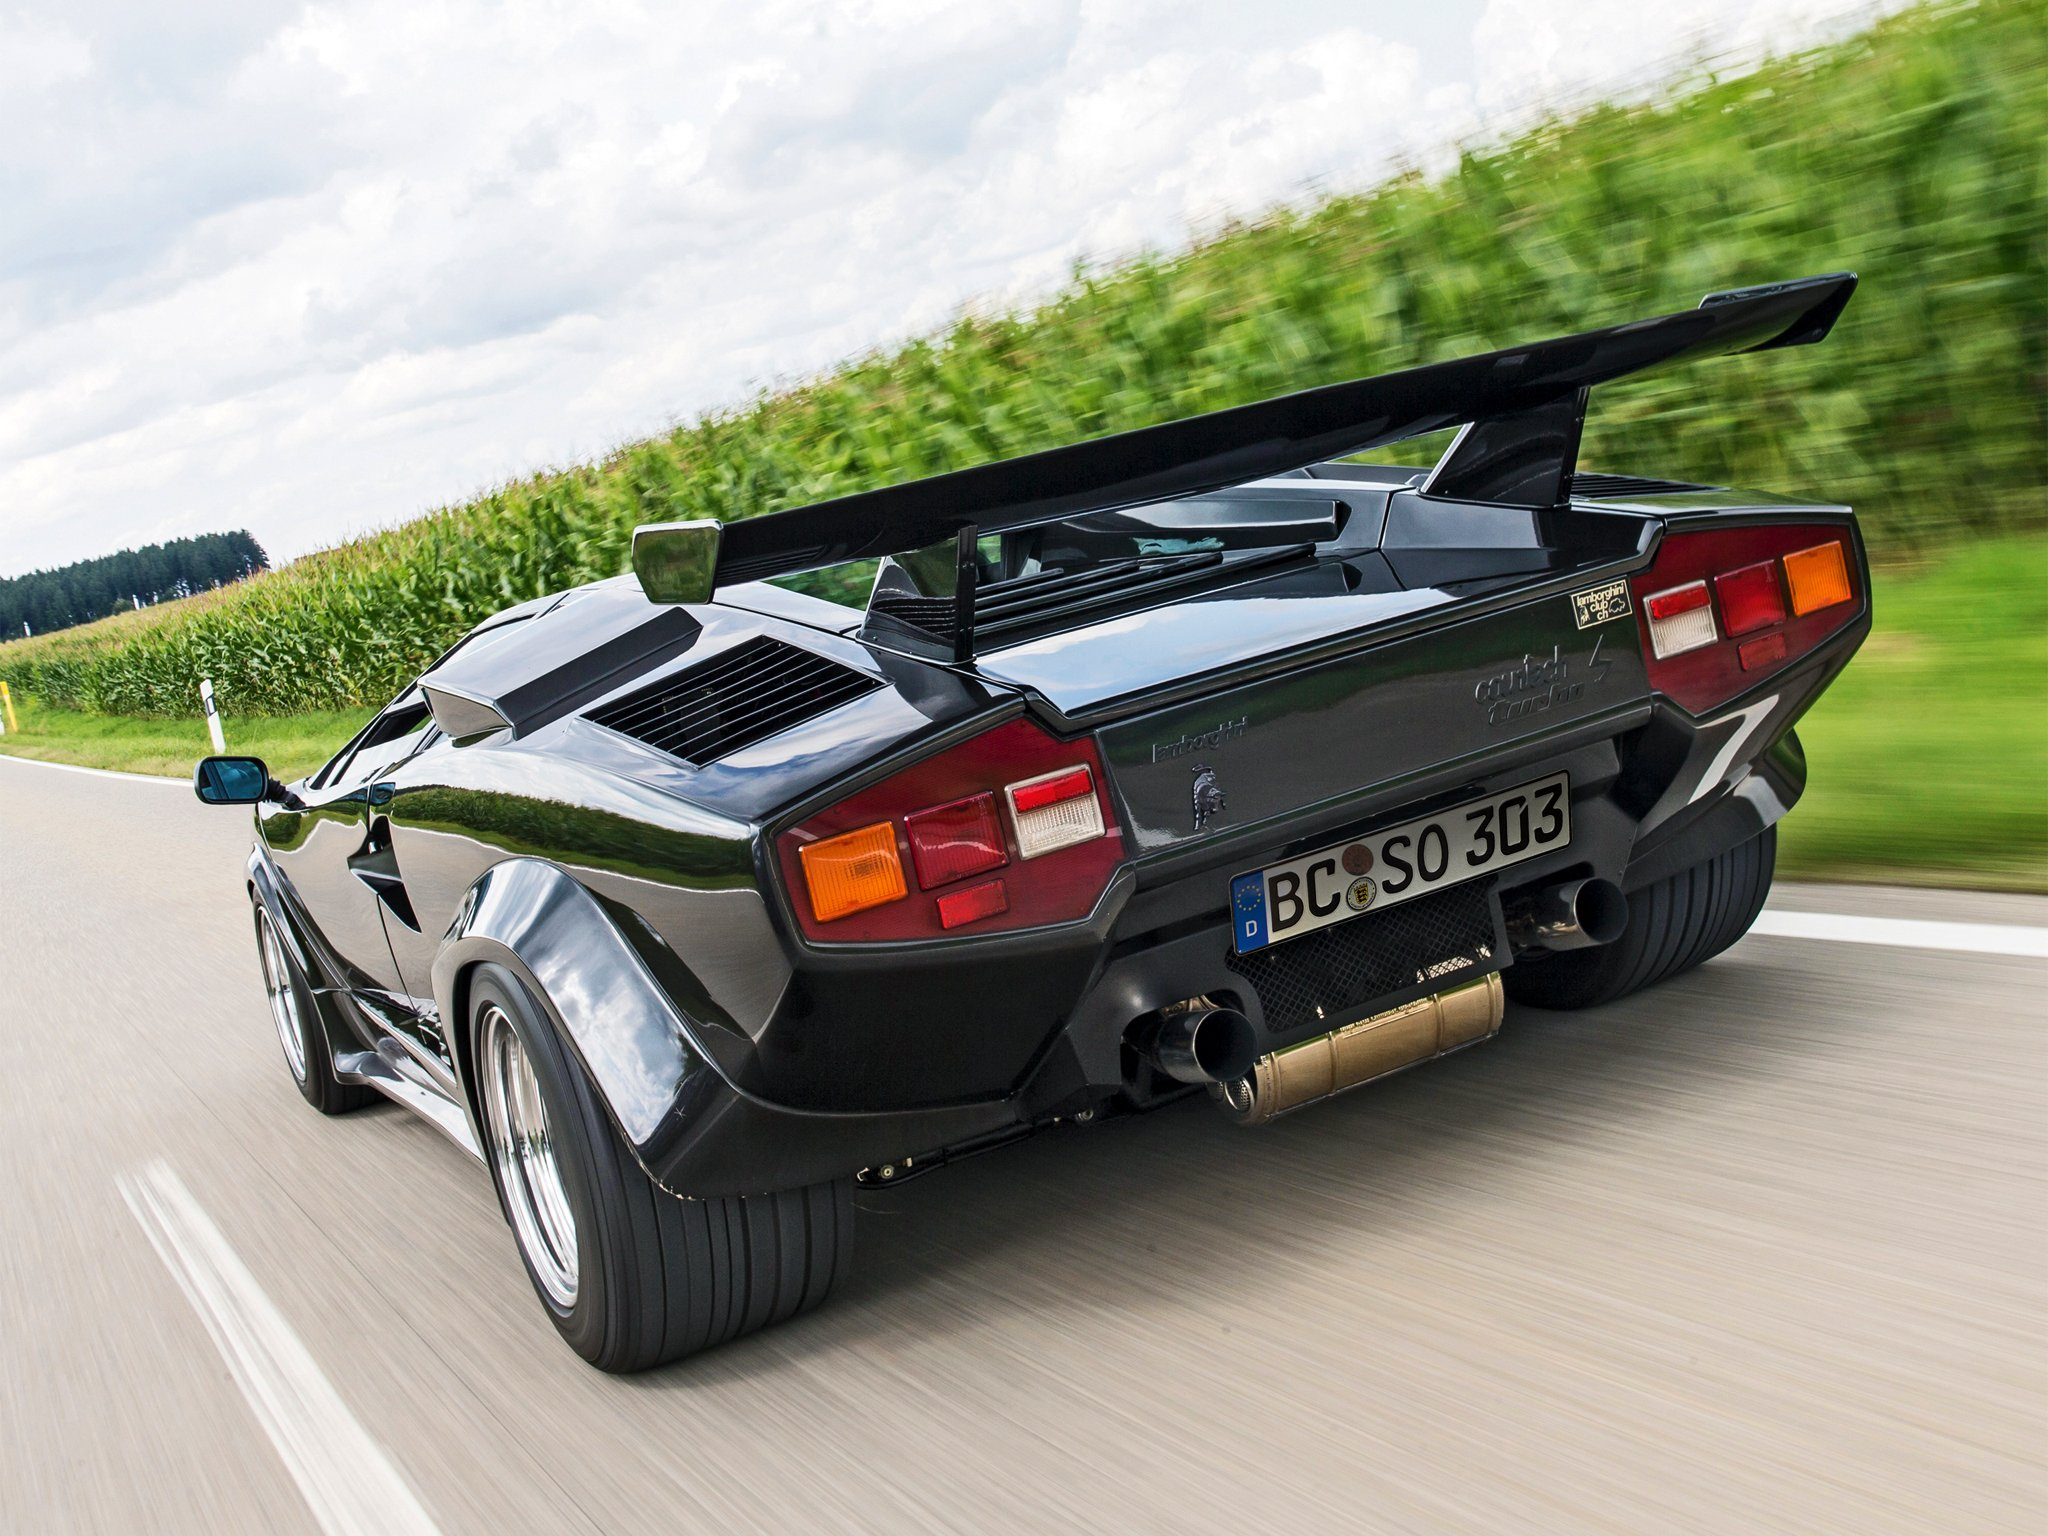 1984 Lamborghini Countach Lp500 Turbo S Supercar Wallpaper